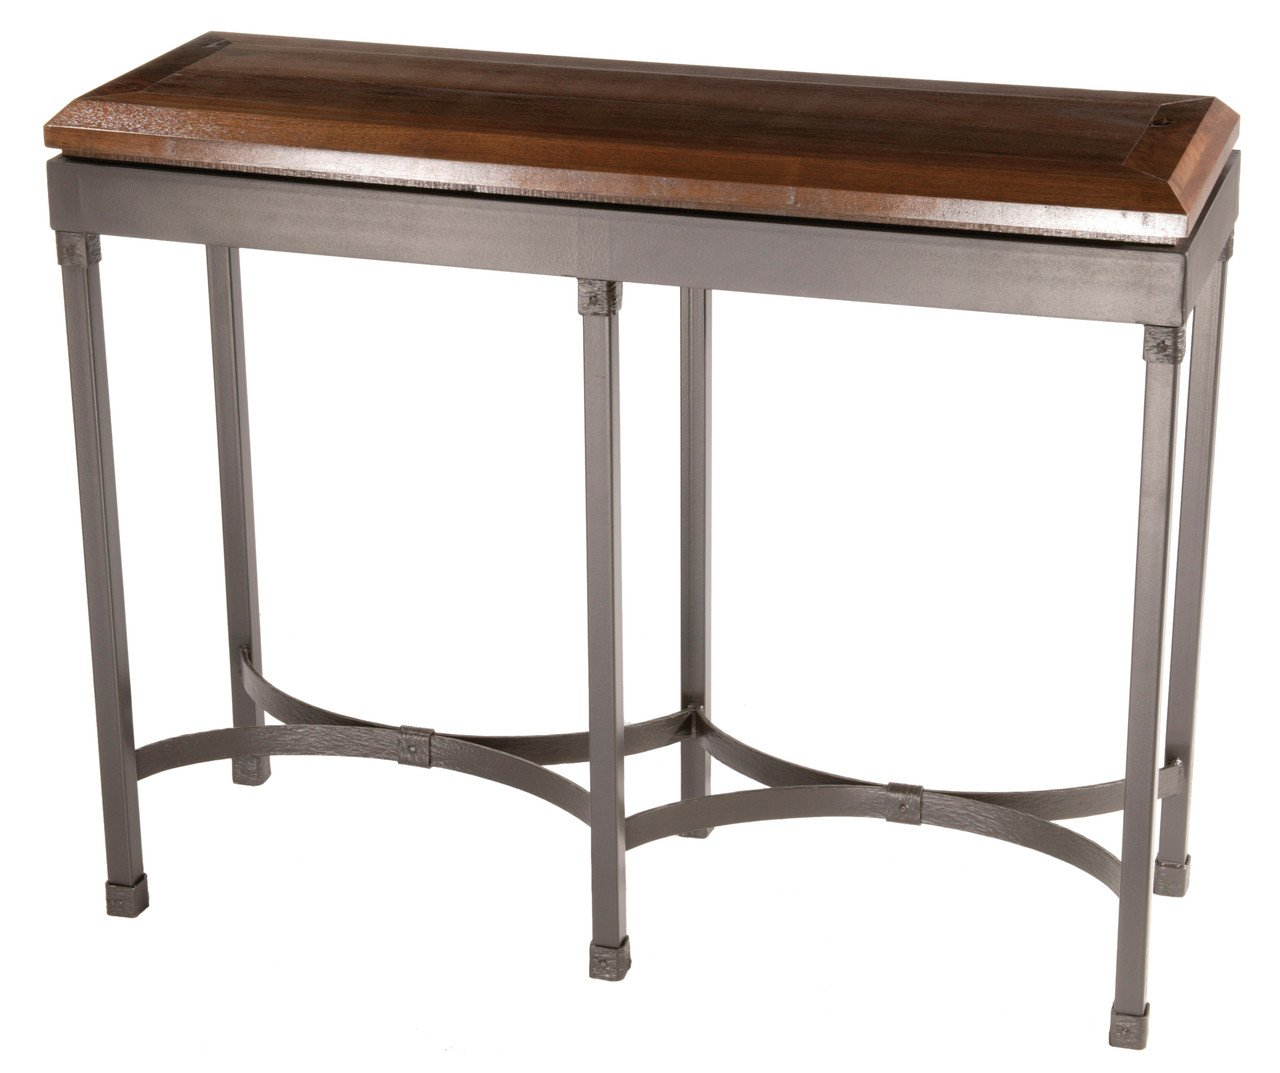 Console Table Cedarvale - Stone County Table Image